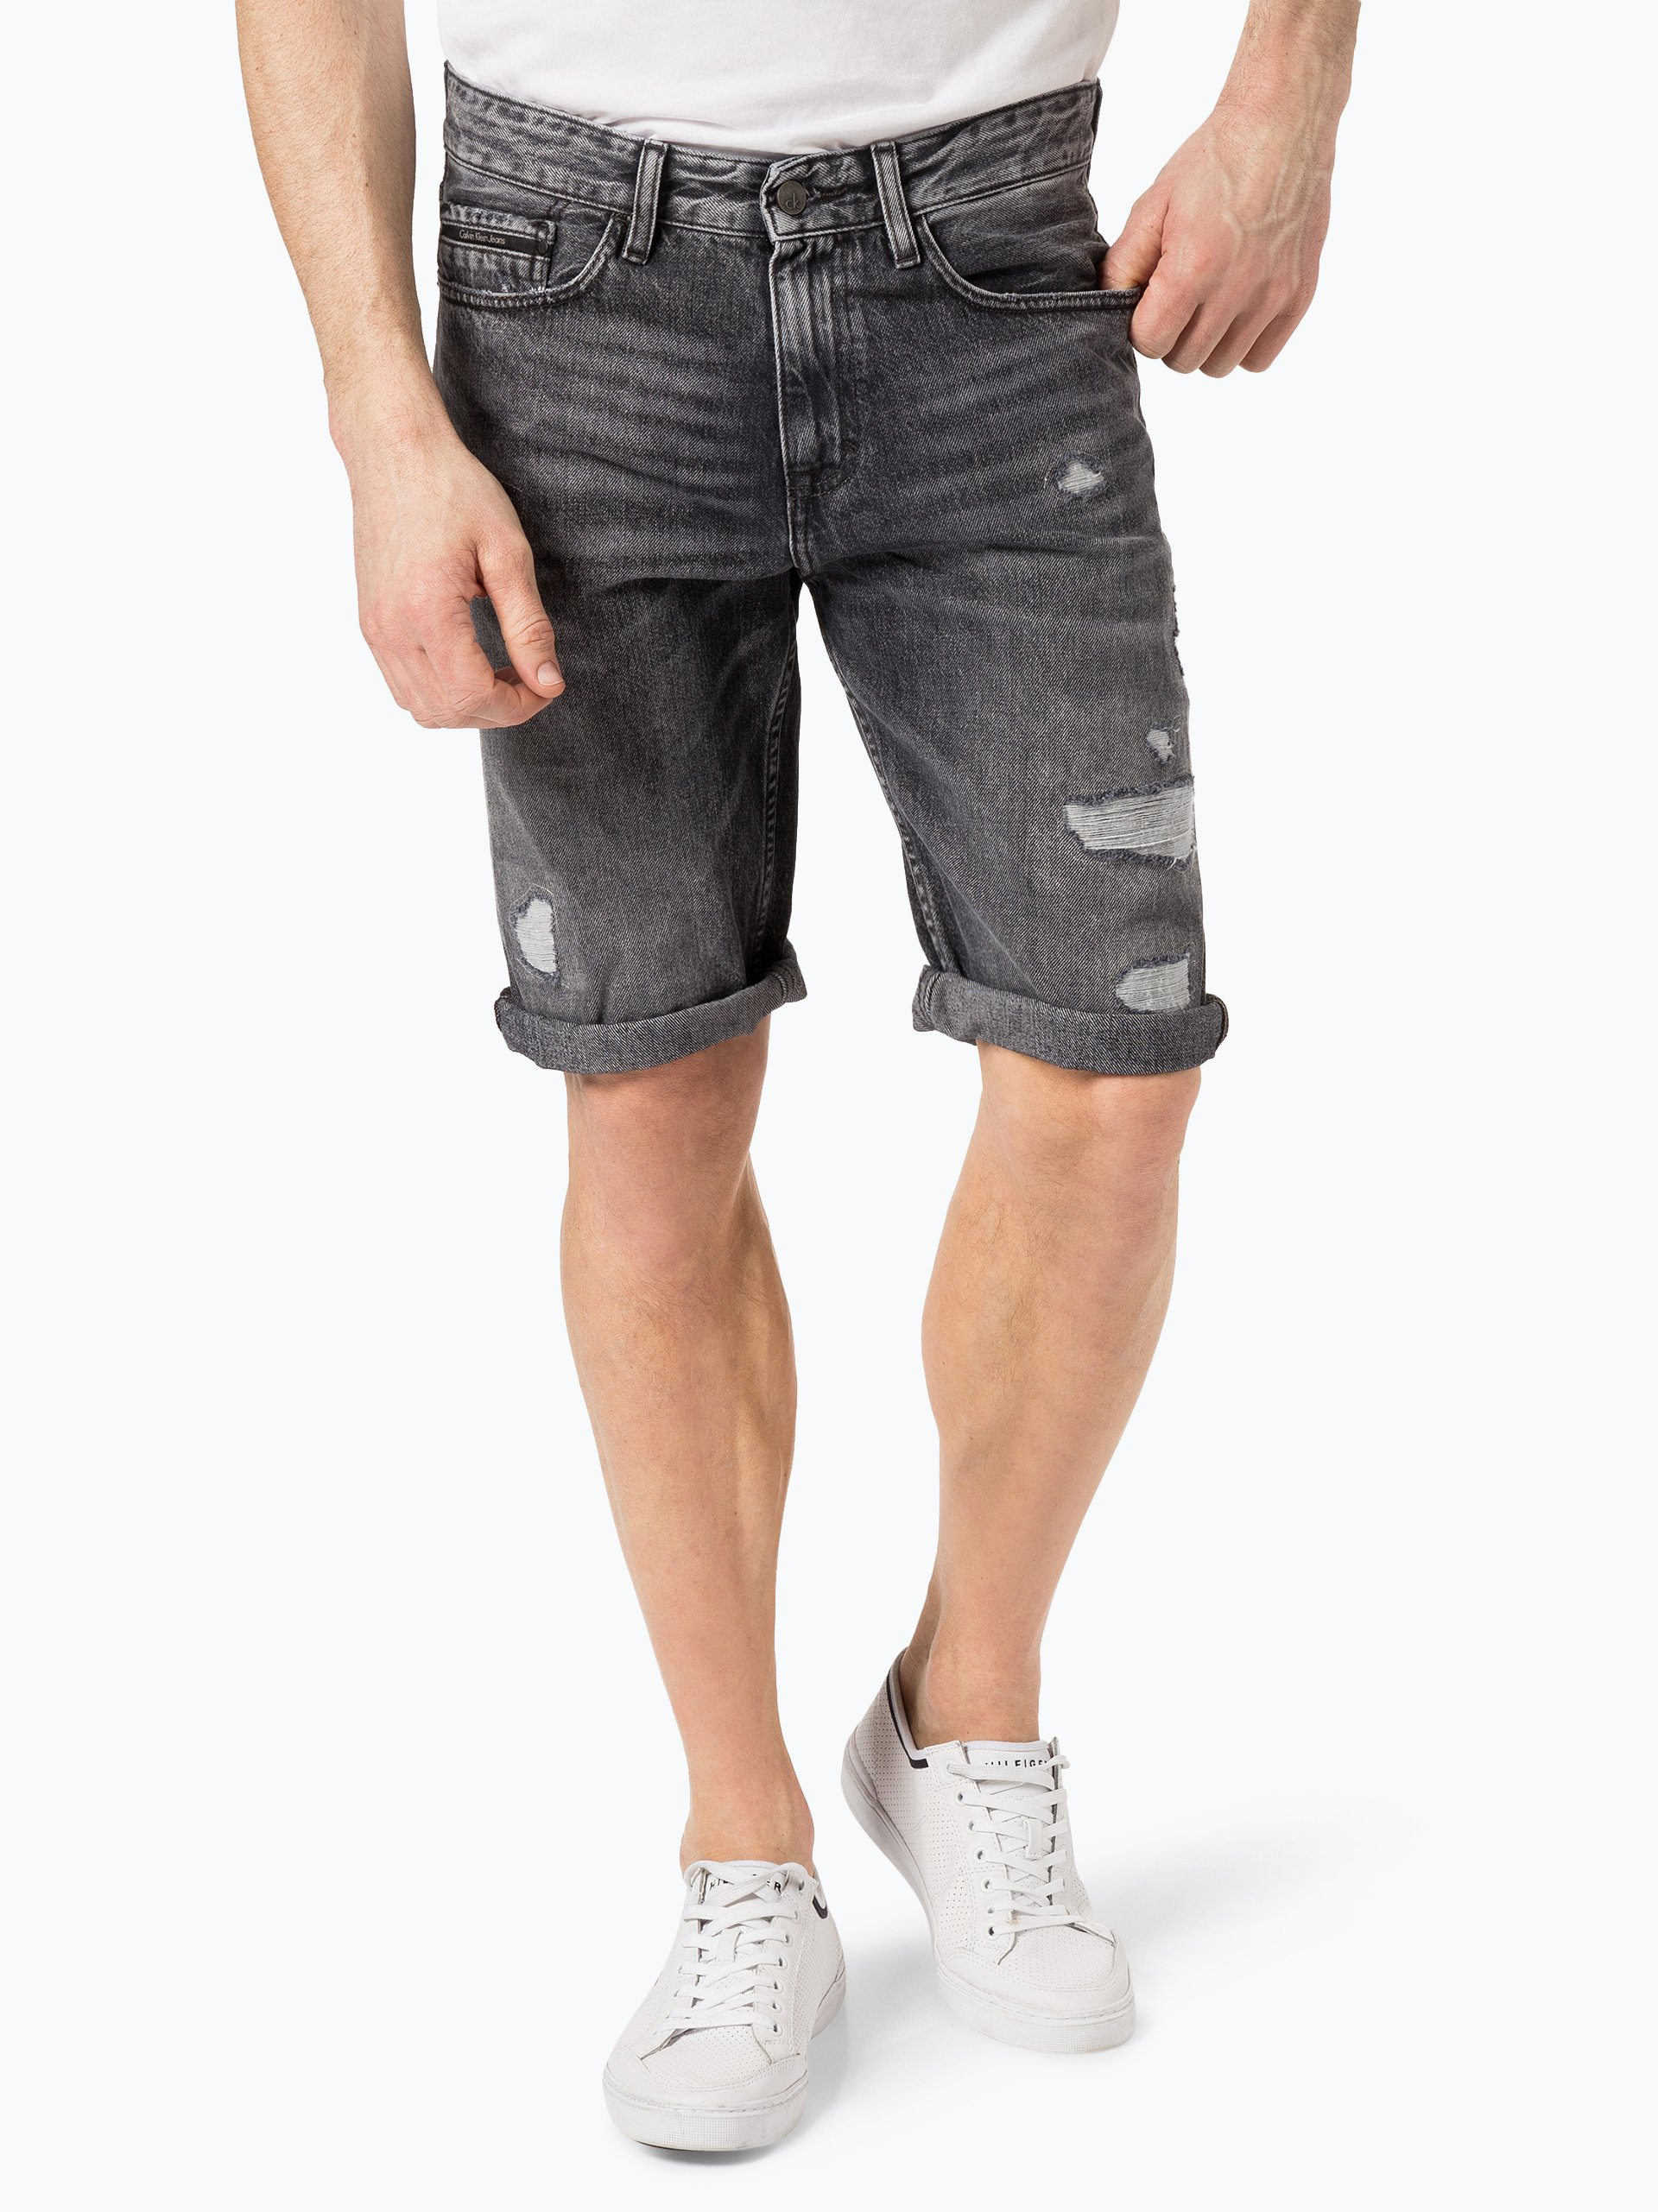 calvin klein jeans herren shorts 2 online kaufen peek und cloppenburg de. Black Bedroom Furniture Sets. Home Design Ideas